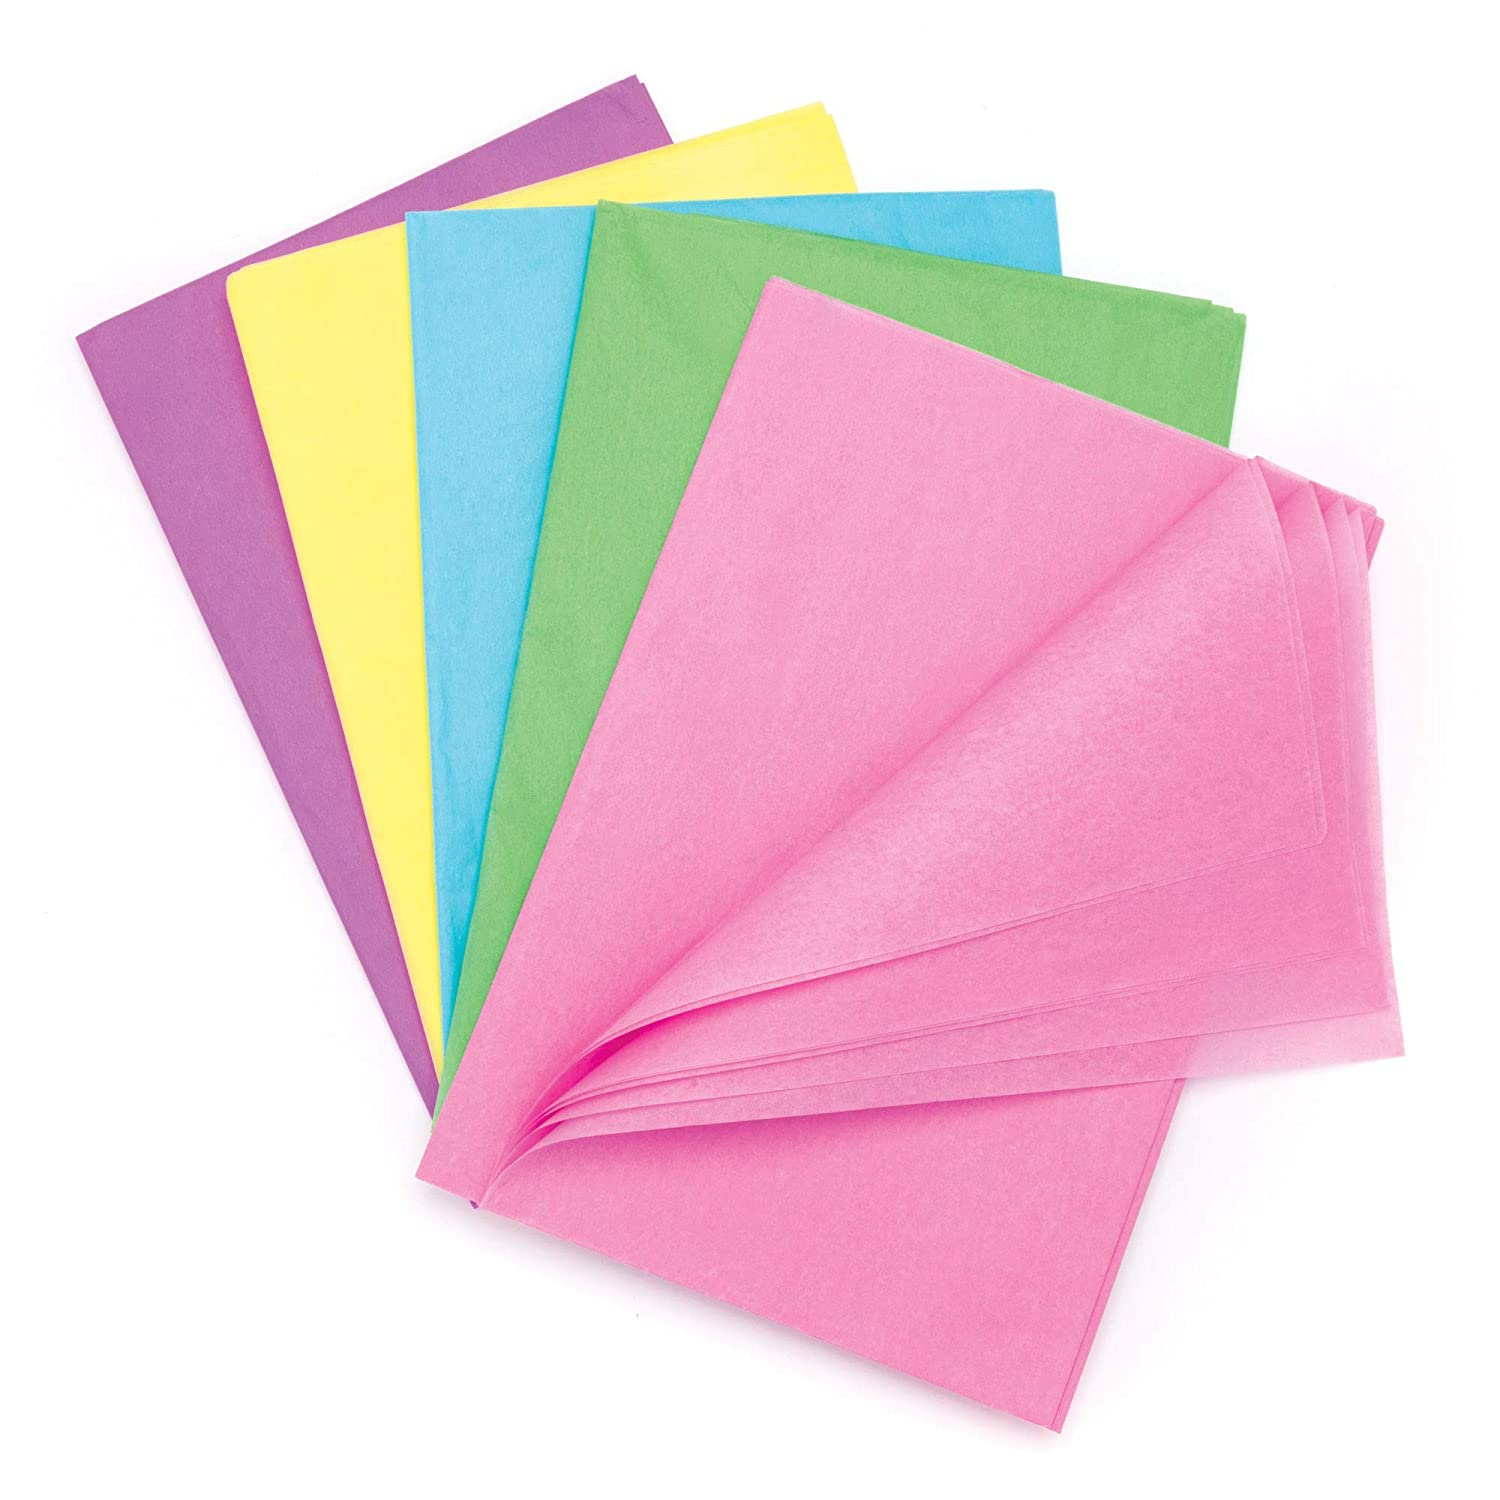 Baker Ross Pastel Tissue Paper Value Pack Perfect for Kids Spring Themed Arts and Crafts Pack of 25